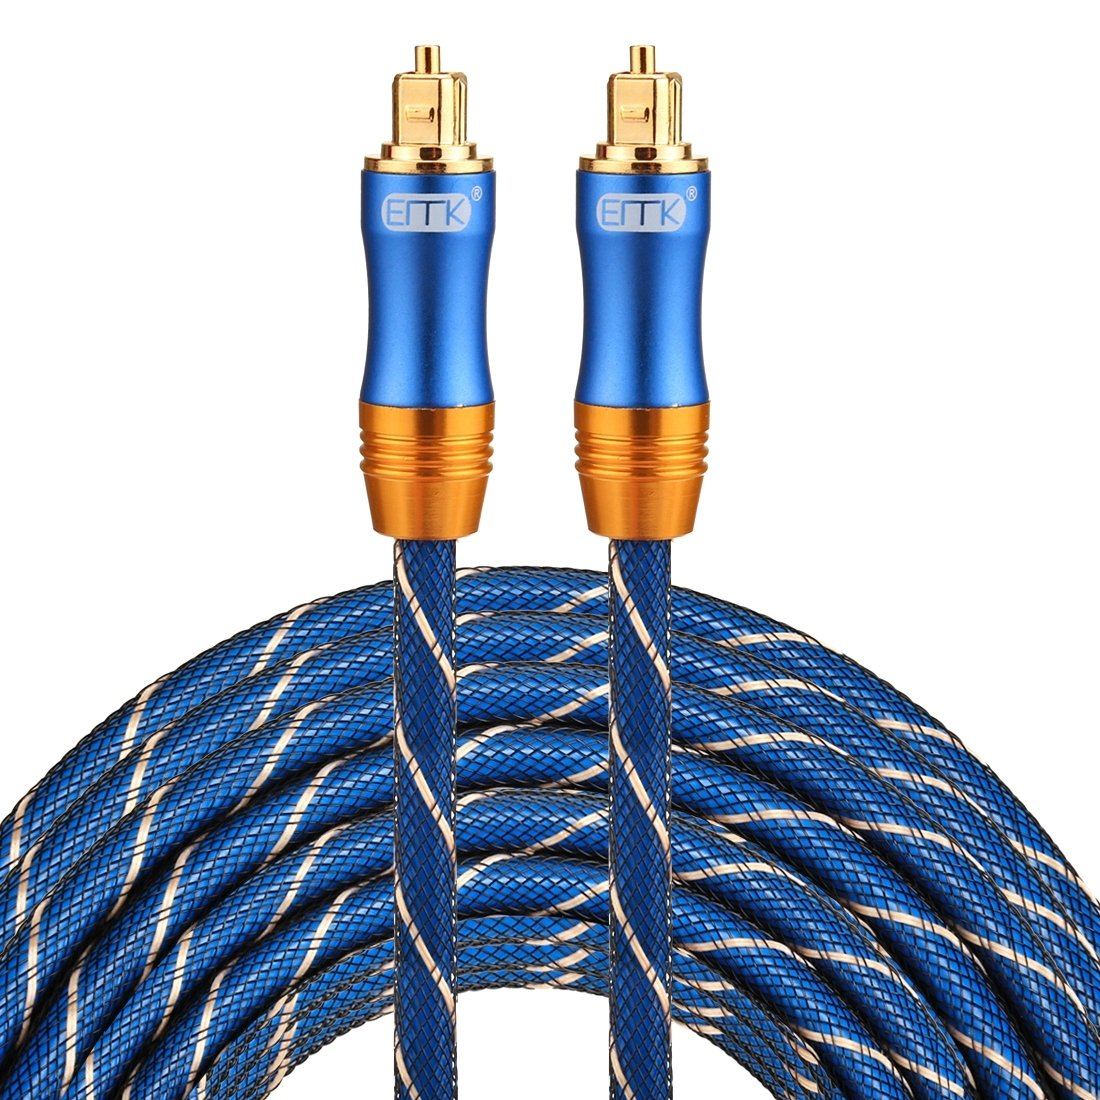 Optical Cables, EMK LSYJ-A 15m OD6.0mm Gold Plated Metal Head Toslink Male to Male Digital Optical Audio Cable